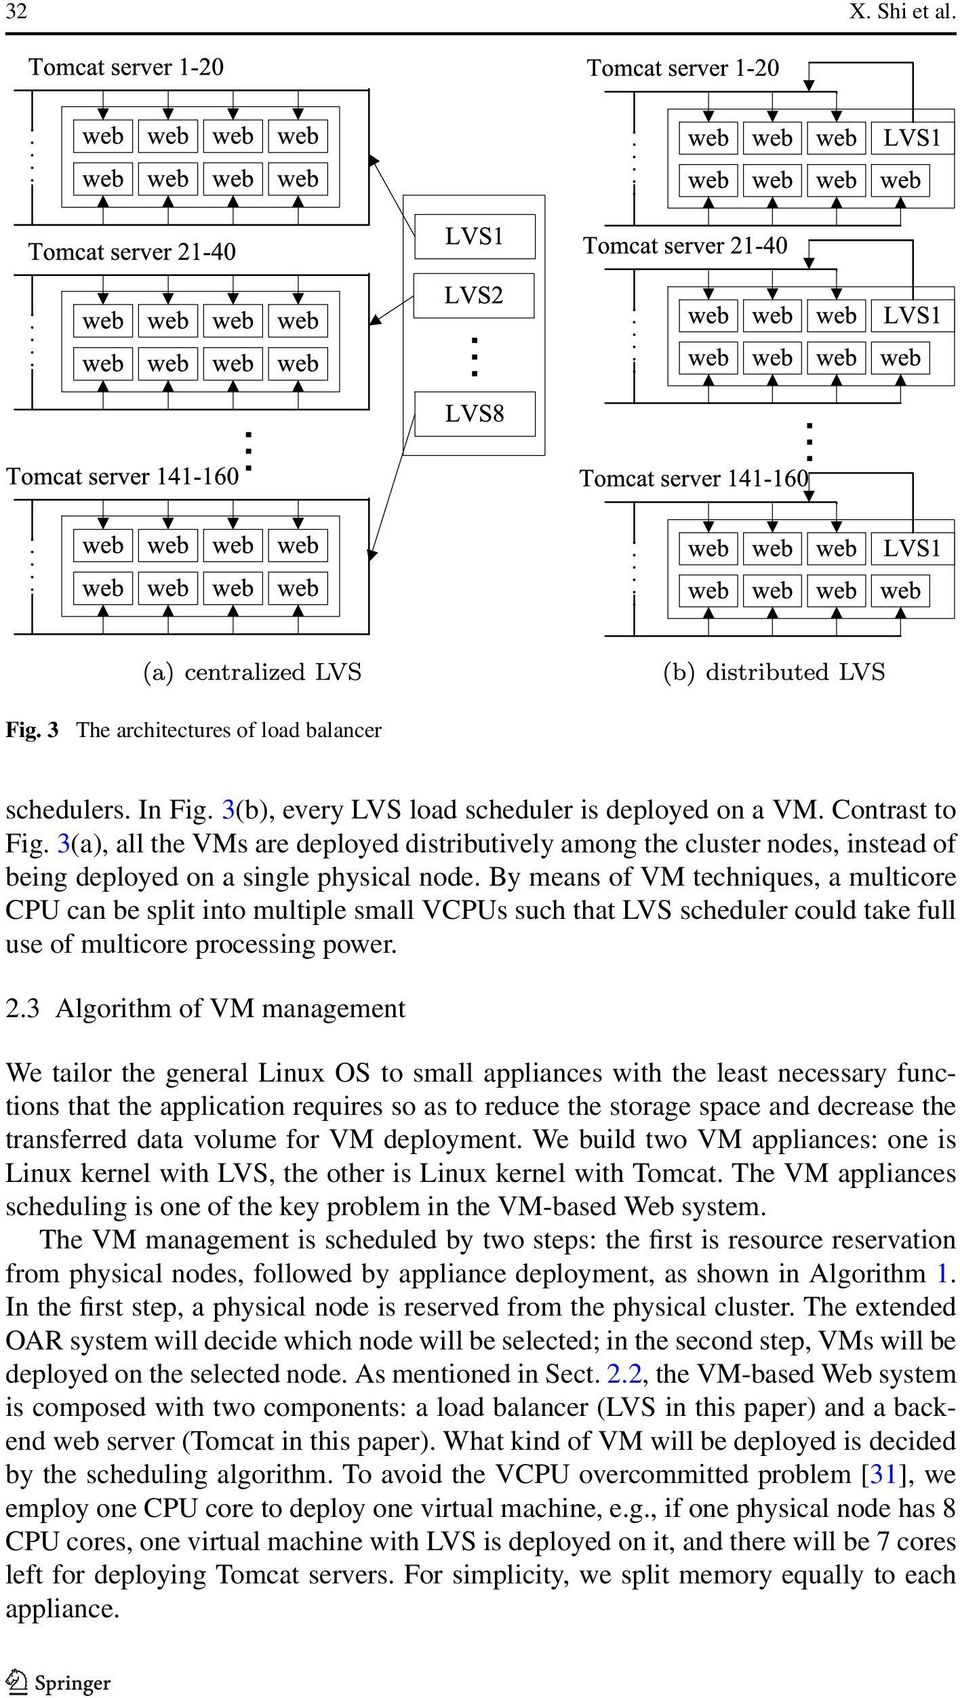 By means of VM techniques, a multicore CPU can be split into multiple small VCPUs such that LVS scheduler could take full use of multicore processing power. 2.